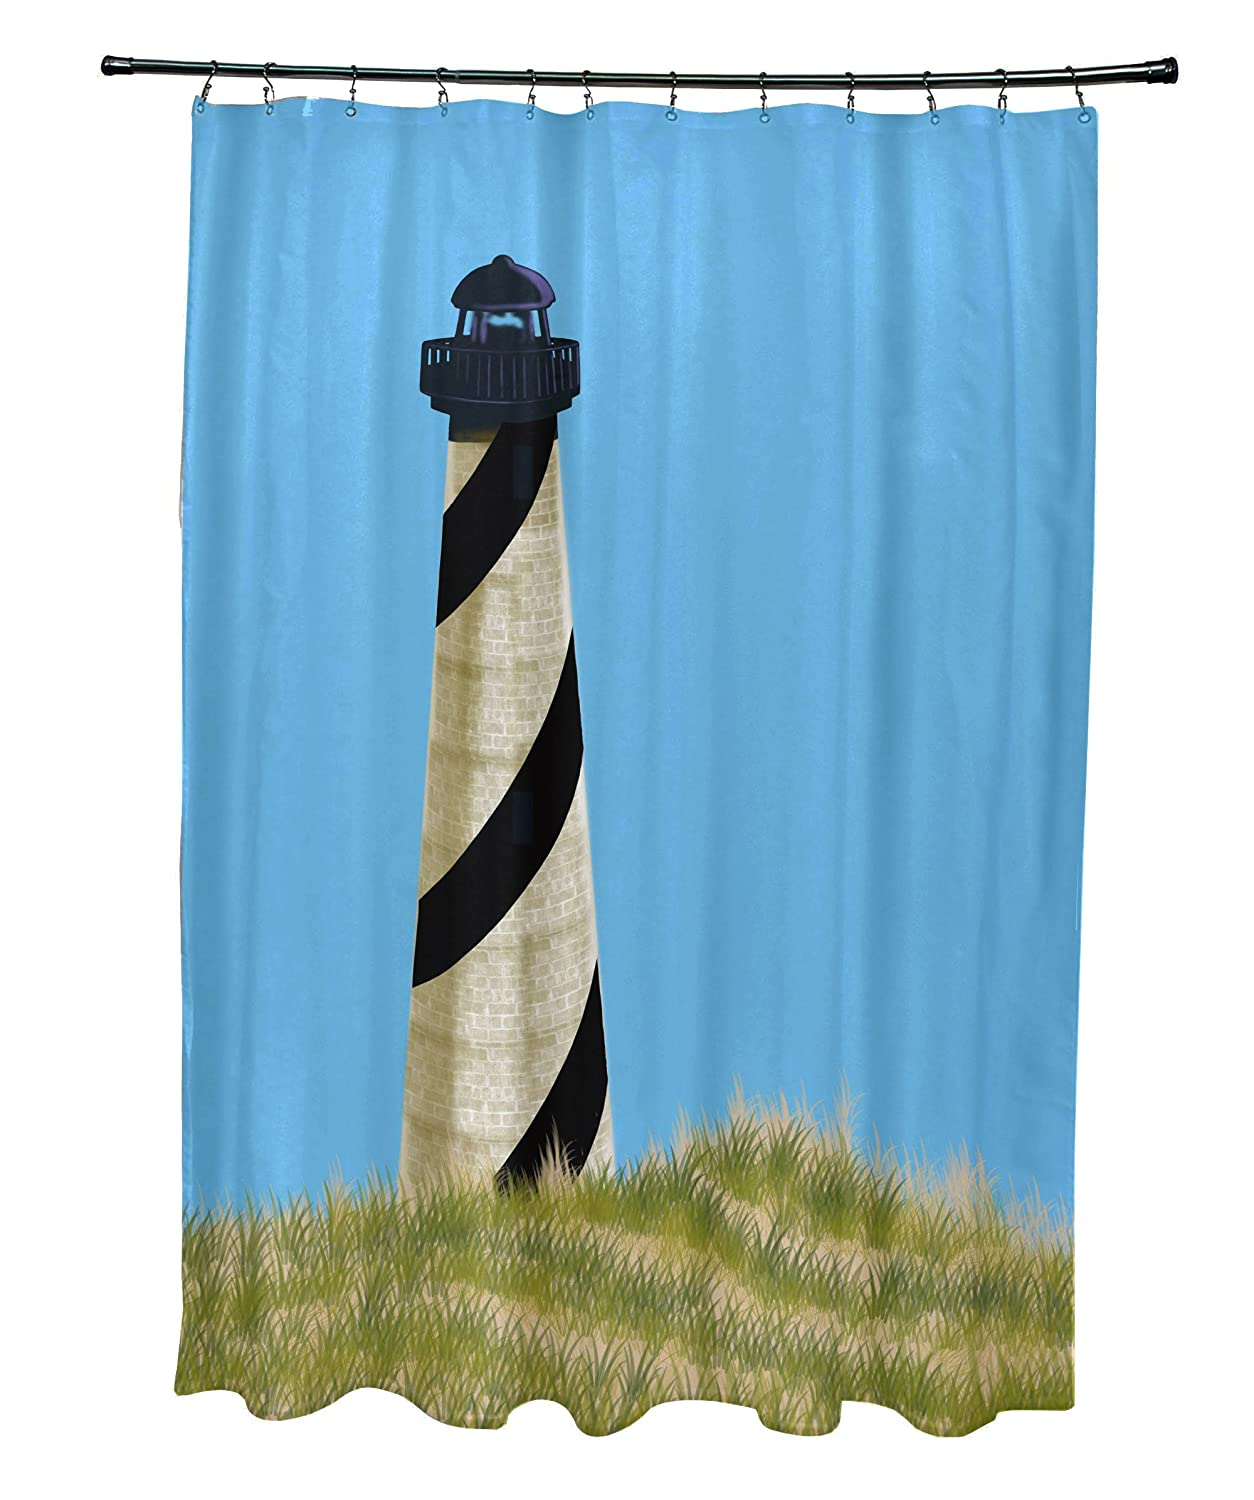 Geometric Print Shower Curtain Blue E by design SCGN440BL23 OuterBanks